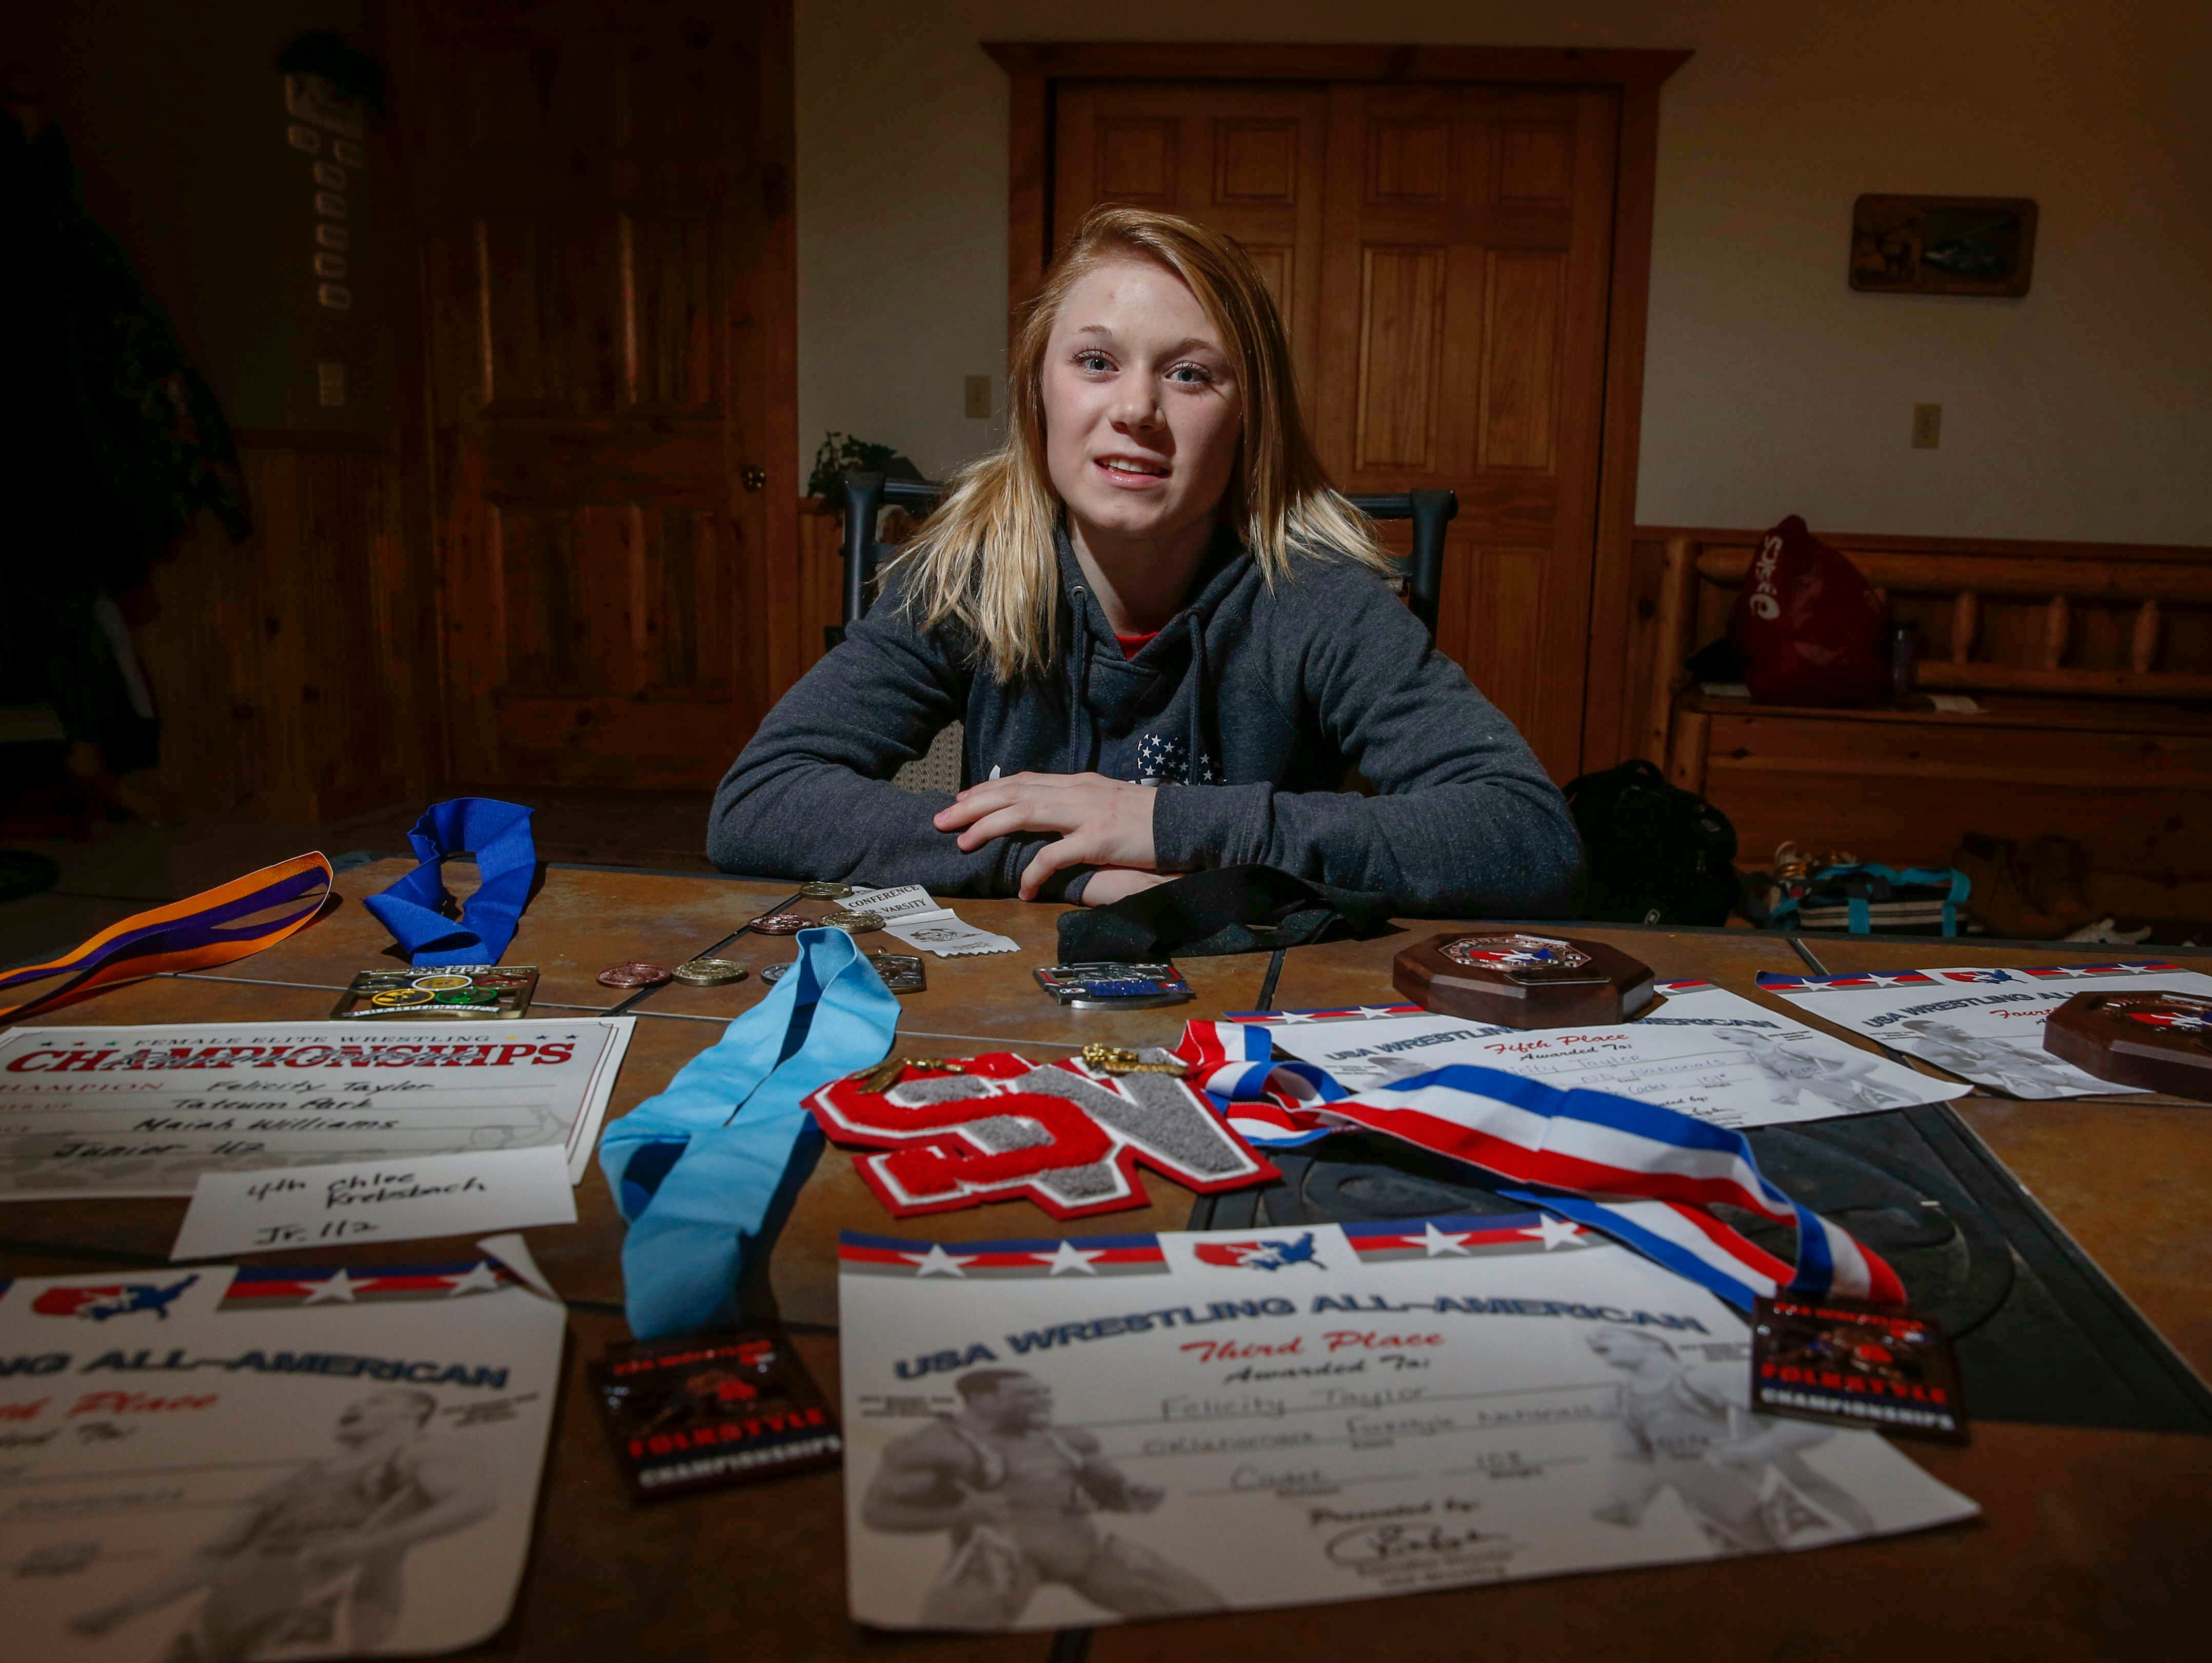 South Winneshiek junior Felicity Taylor poses with some of her wrestling medals and certificates at her home in Spillville, Iowa, on Tuesday, Jan. 31, 2017.